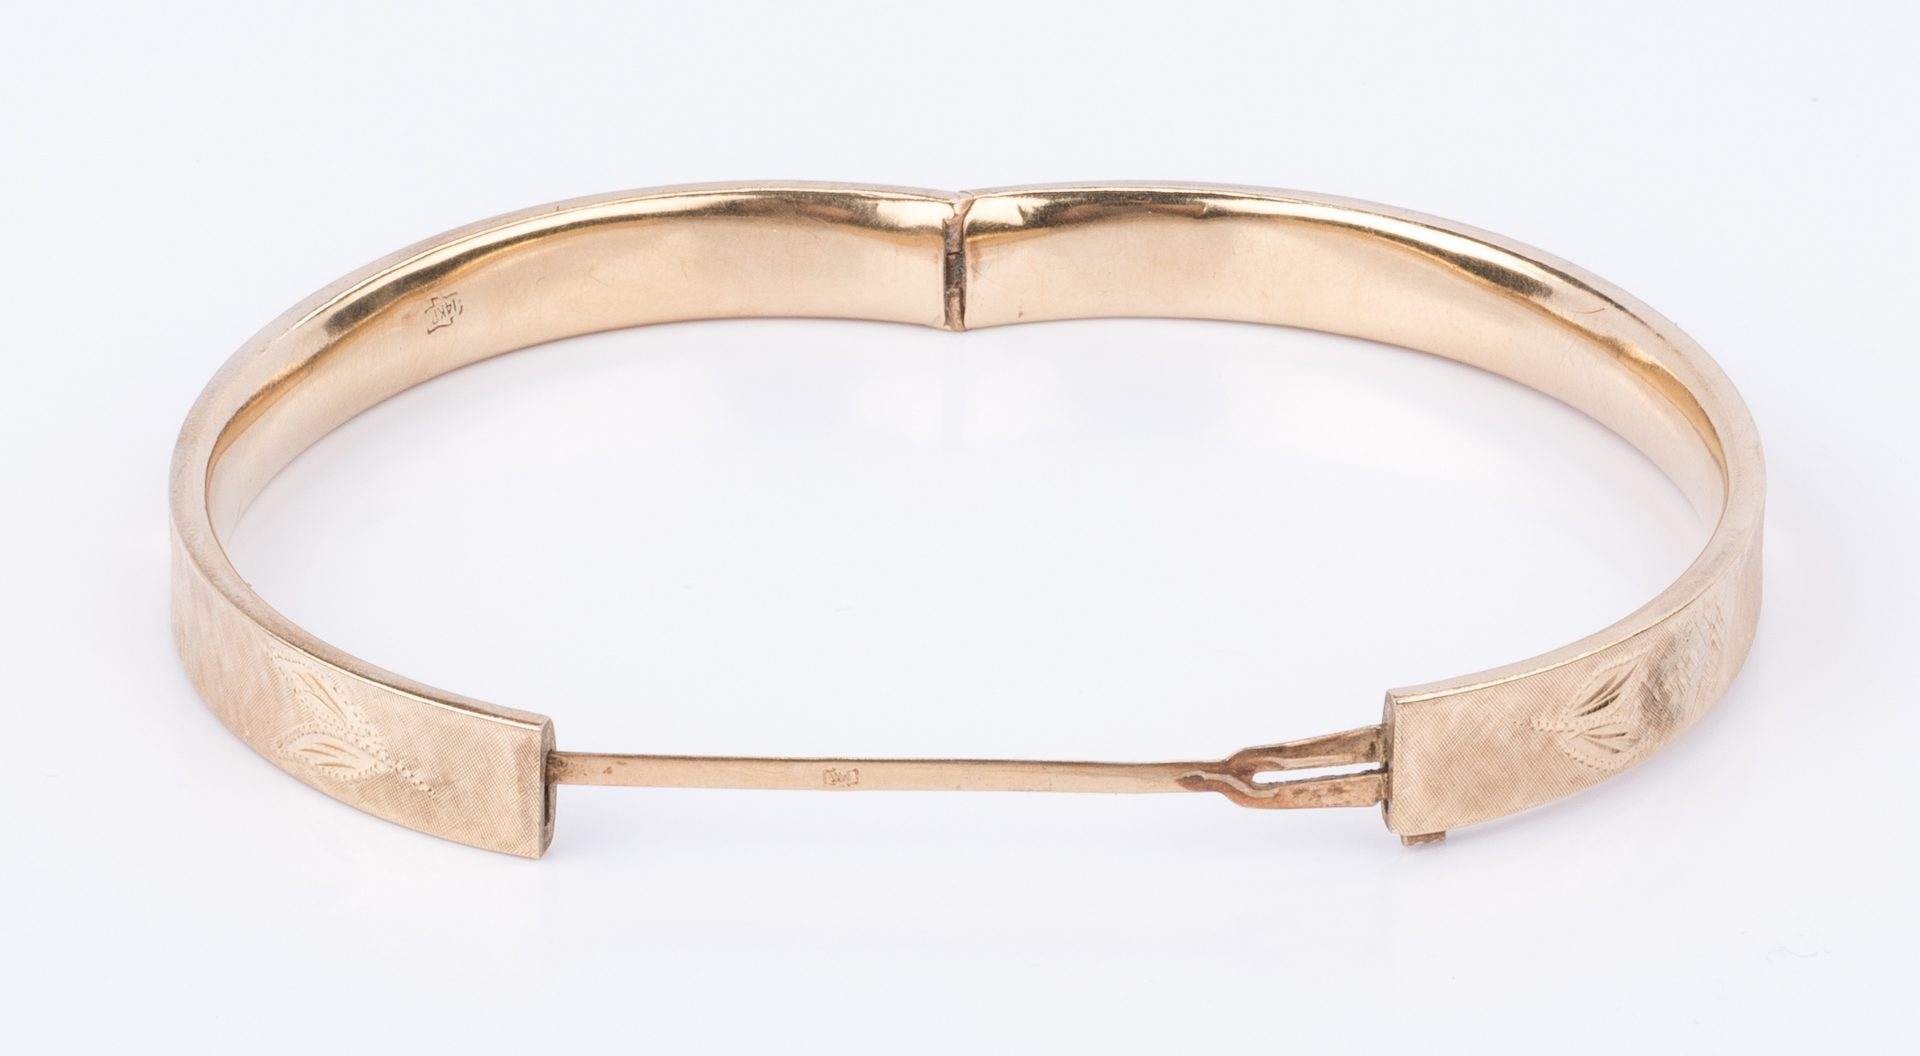 Lot 853: 14K Gold Bangle Bracelet